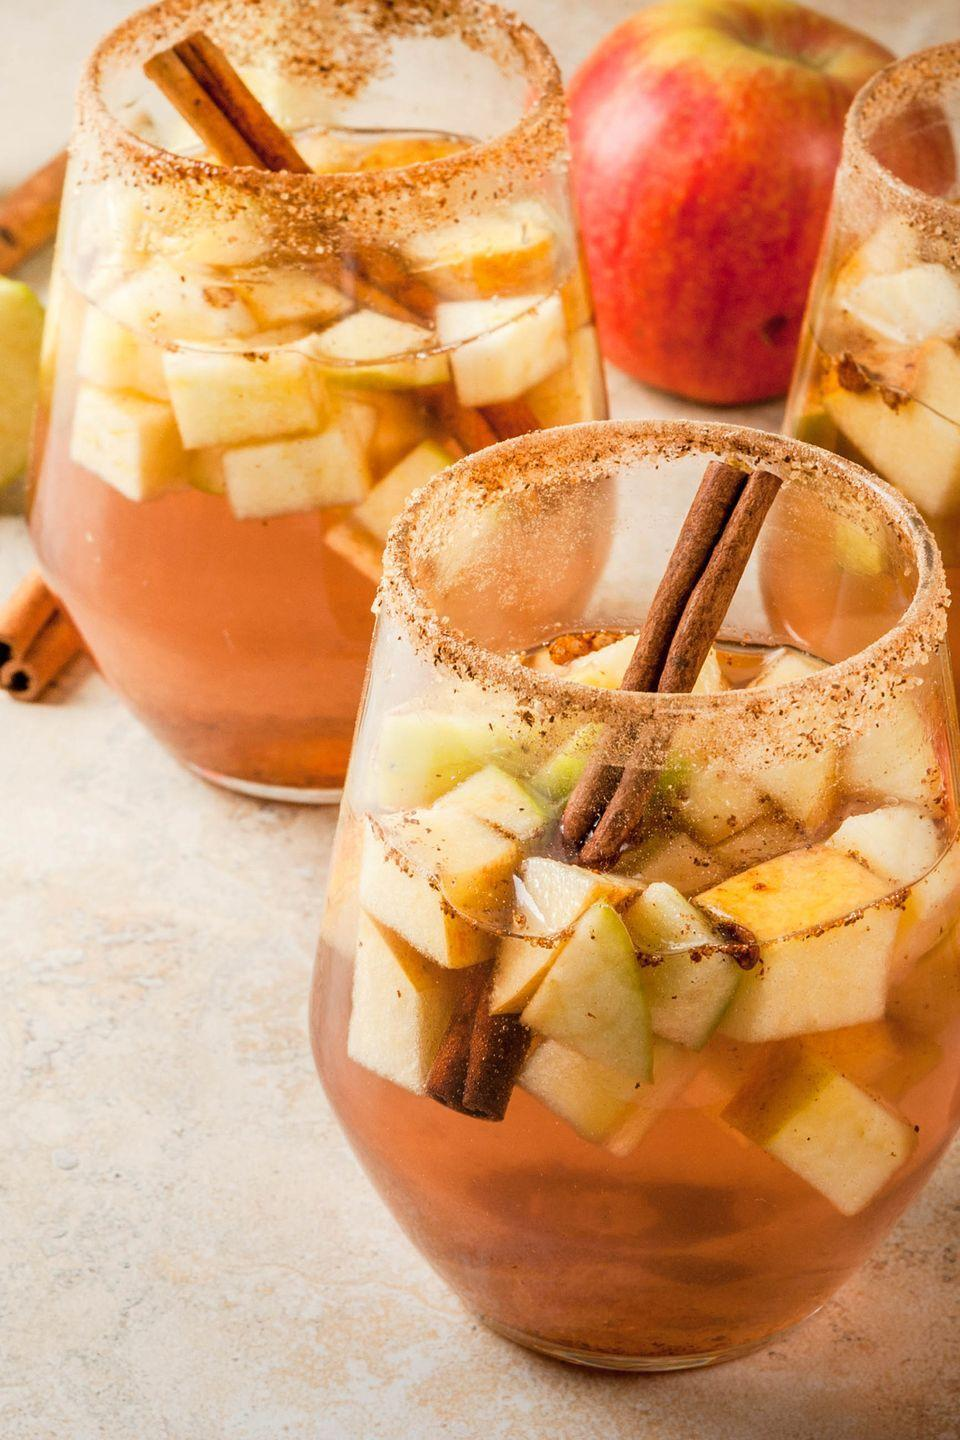 "<p>Cider, caramel, cinnamon, apple, and more! <a href=""http://www.countryliving.com/food-drinks/g3719/fall-sangria-recipes/"" rel=""nofollow noopener"" target=""_blank"" data-ylk=""slk:These tasty sangria recipes"" class=""link rapid-noclick-resp"">These tasty sangria recipes</a> feature all the best fall flavors and make the perfect cocktail for fall parties.</p><p><a class=""link rapid-noclick-resp"" href=""https://www.amazon.com/Hiware-Pitcher-Stainless-Beverage-Homemade/dp/B00ICZI5I4/?tag=syn-yahoo-20&ascsubtag=%5Bartid%7C10050.g.2633%5Bsrc%7Cyahoo-us"" rel=""nofollow noopener"" target=""_blank"" data-ylk=""slk:SHOP PITCHERS"">SHOP PITCHERS</a> </p>"